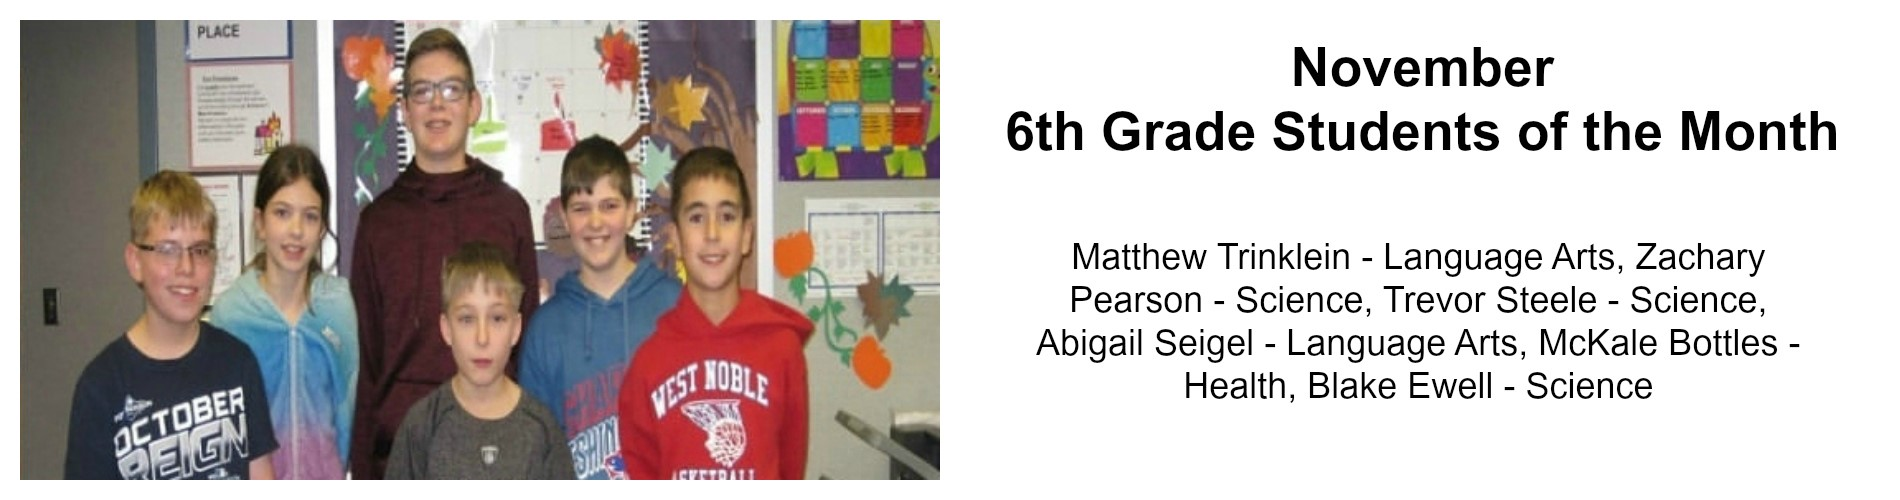 6th-grade students of the month